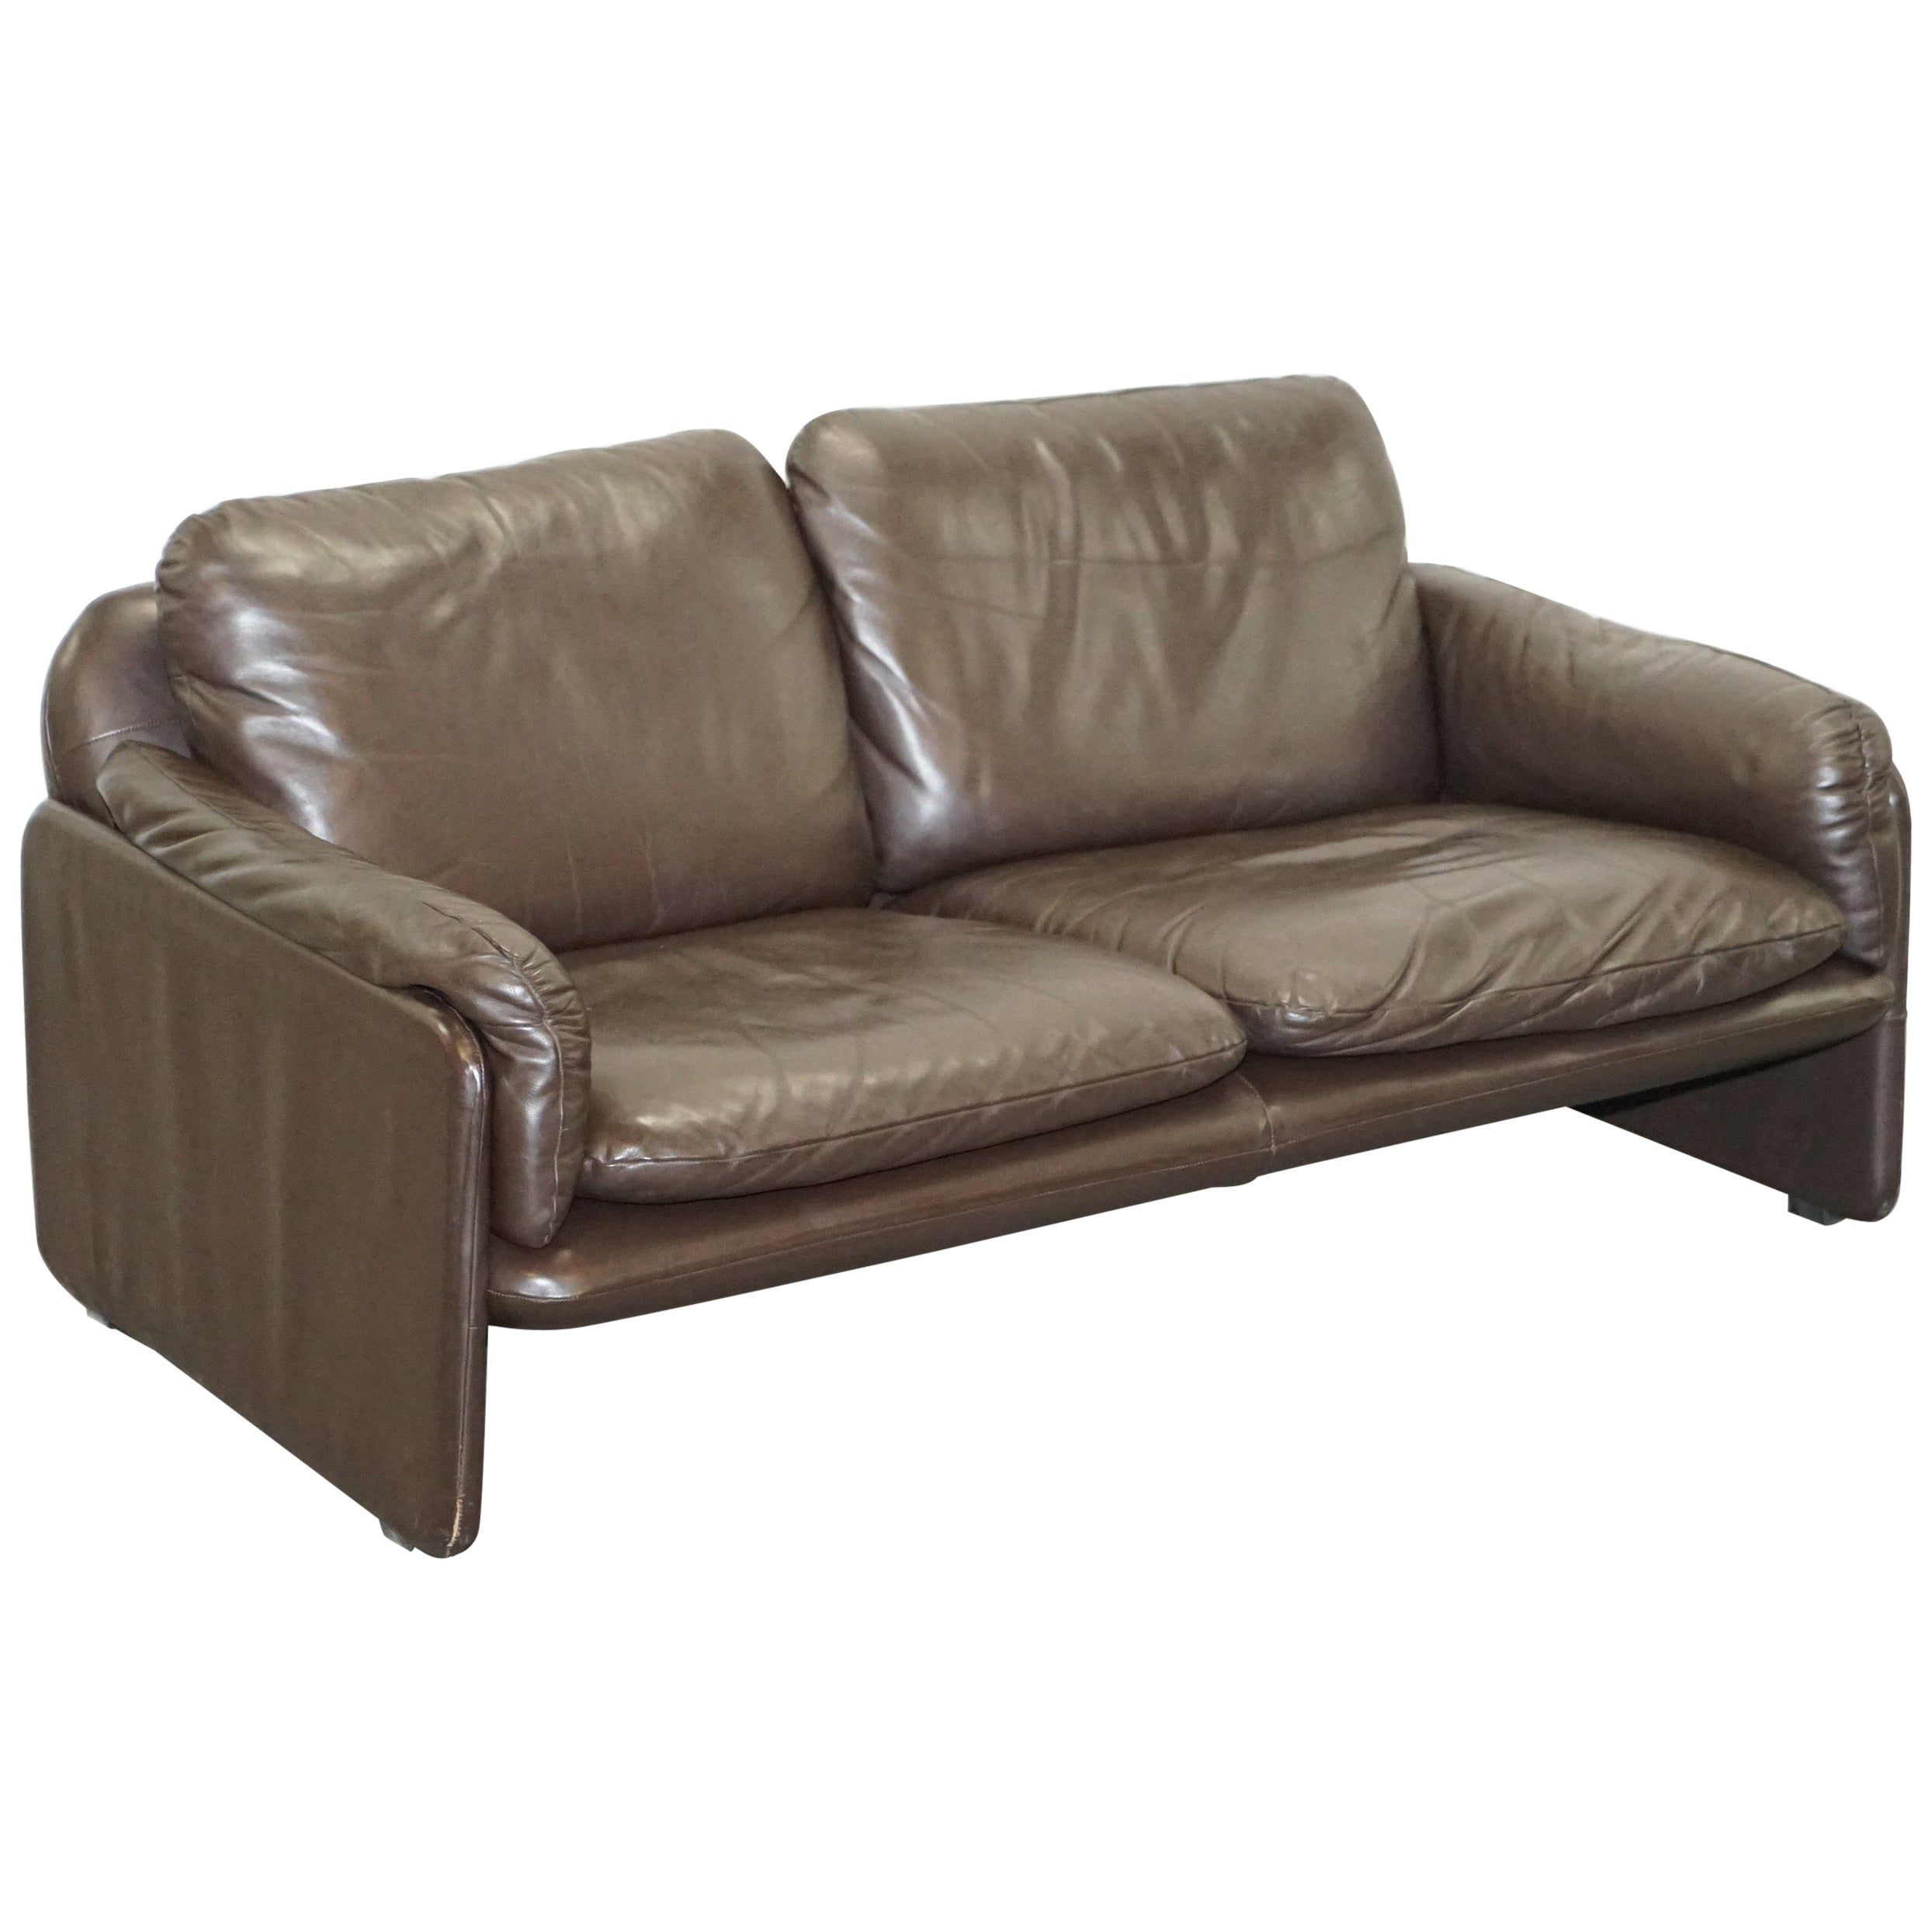 Danish Brown Leather 2 Seat Mid-Century Modern Sofa Armchairs Available